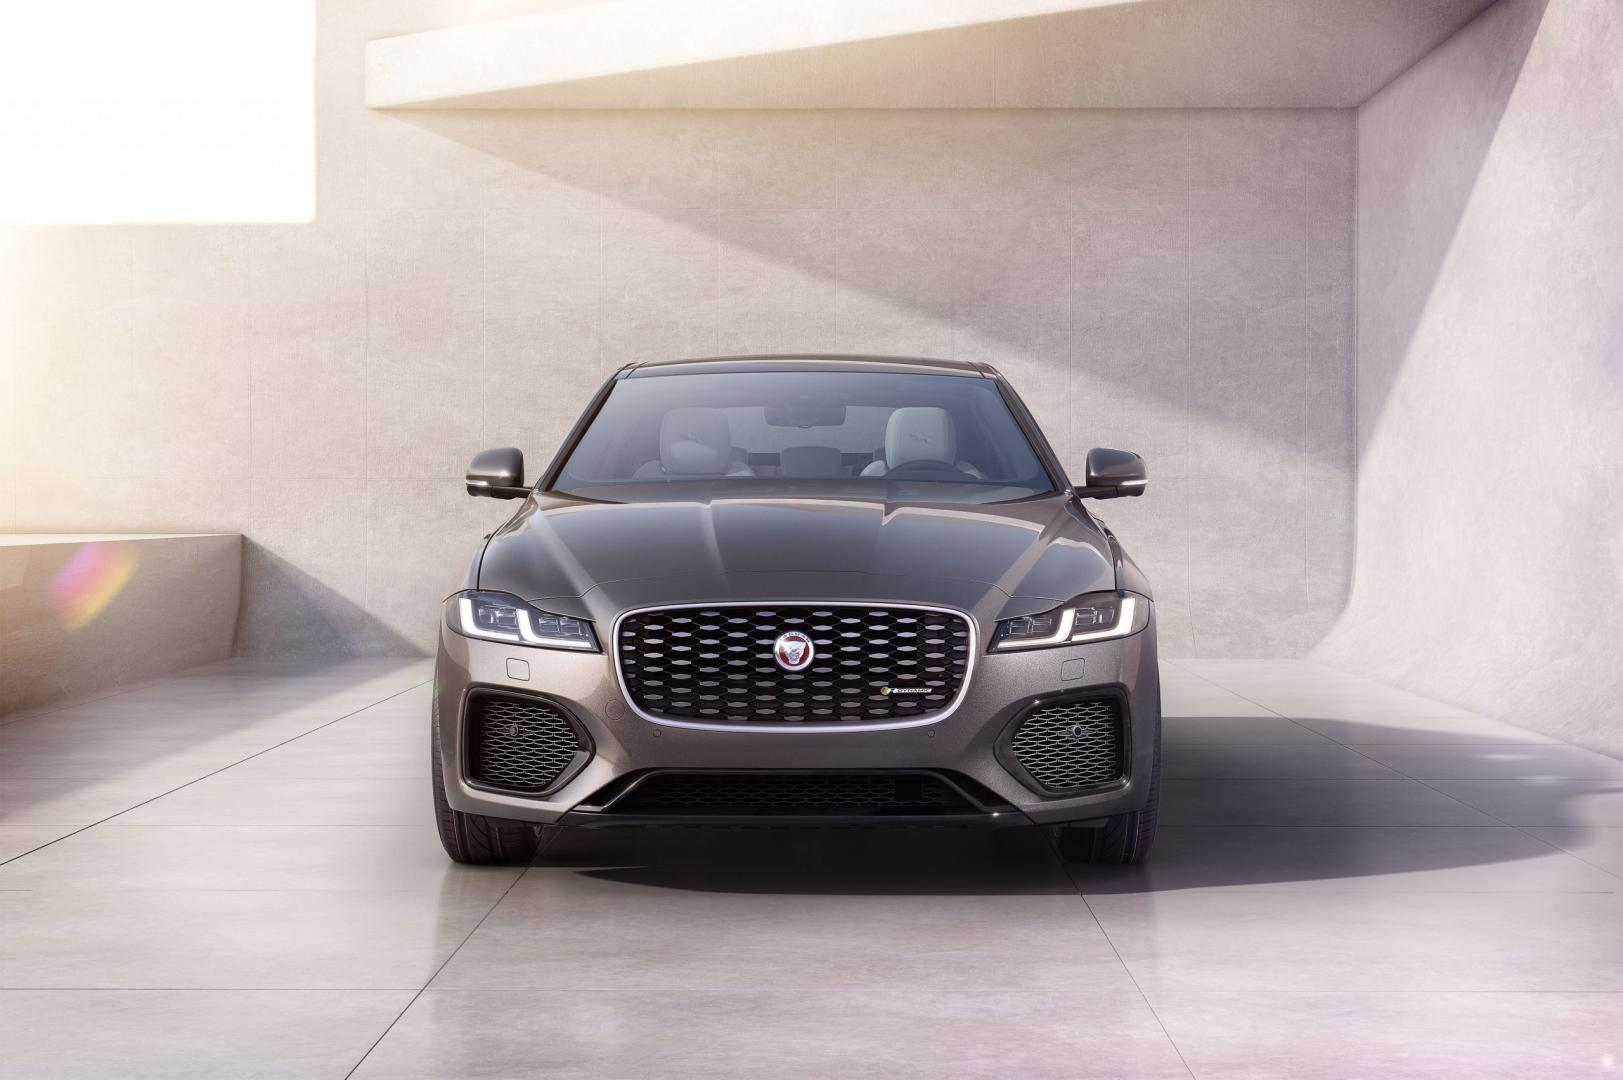 Jaguar XF facelift 2020